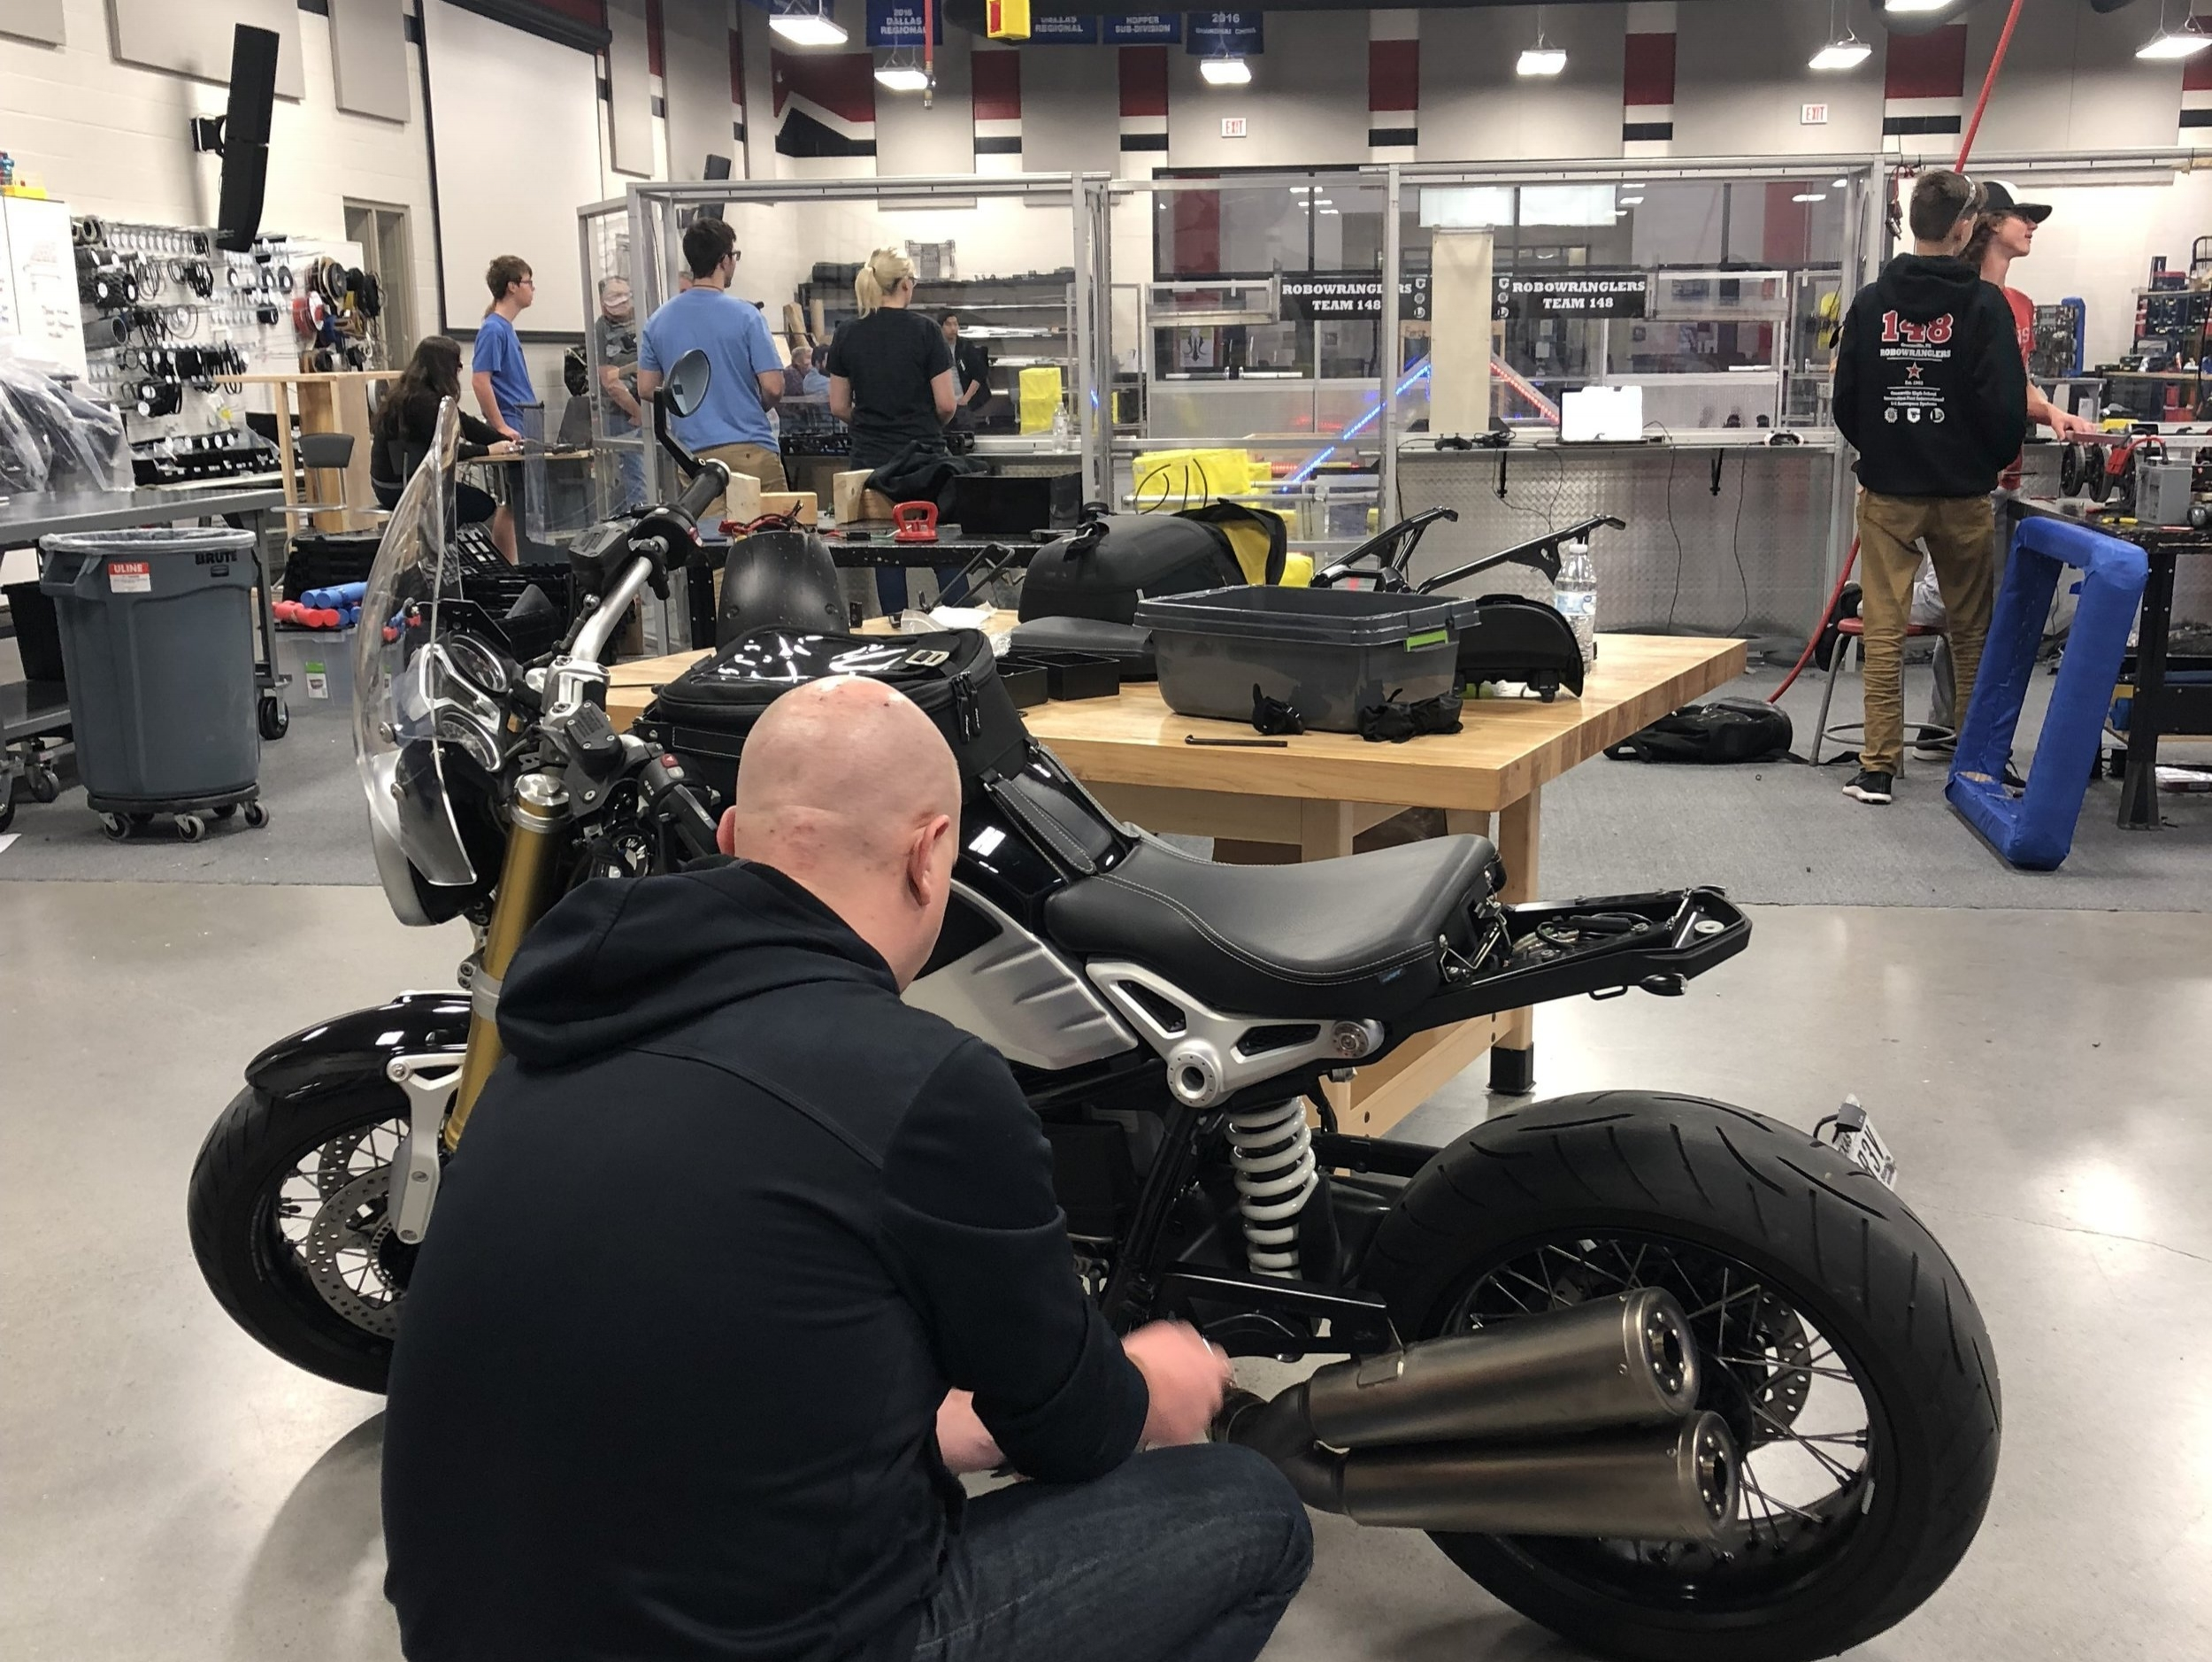 This is me, working on my motorcycle (BMW R nineT) while the drivers run drills against 3310.  I checked in on them every now and then.  #MentorBuilt